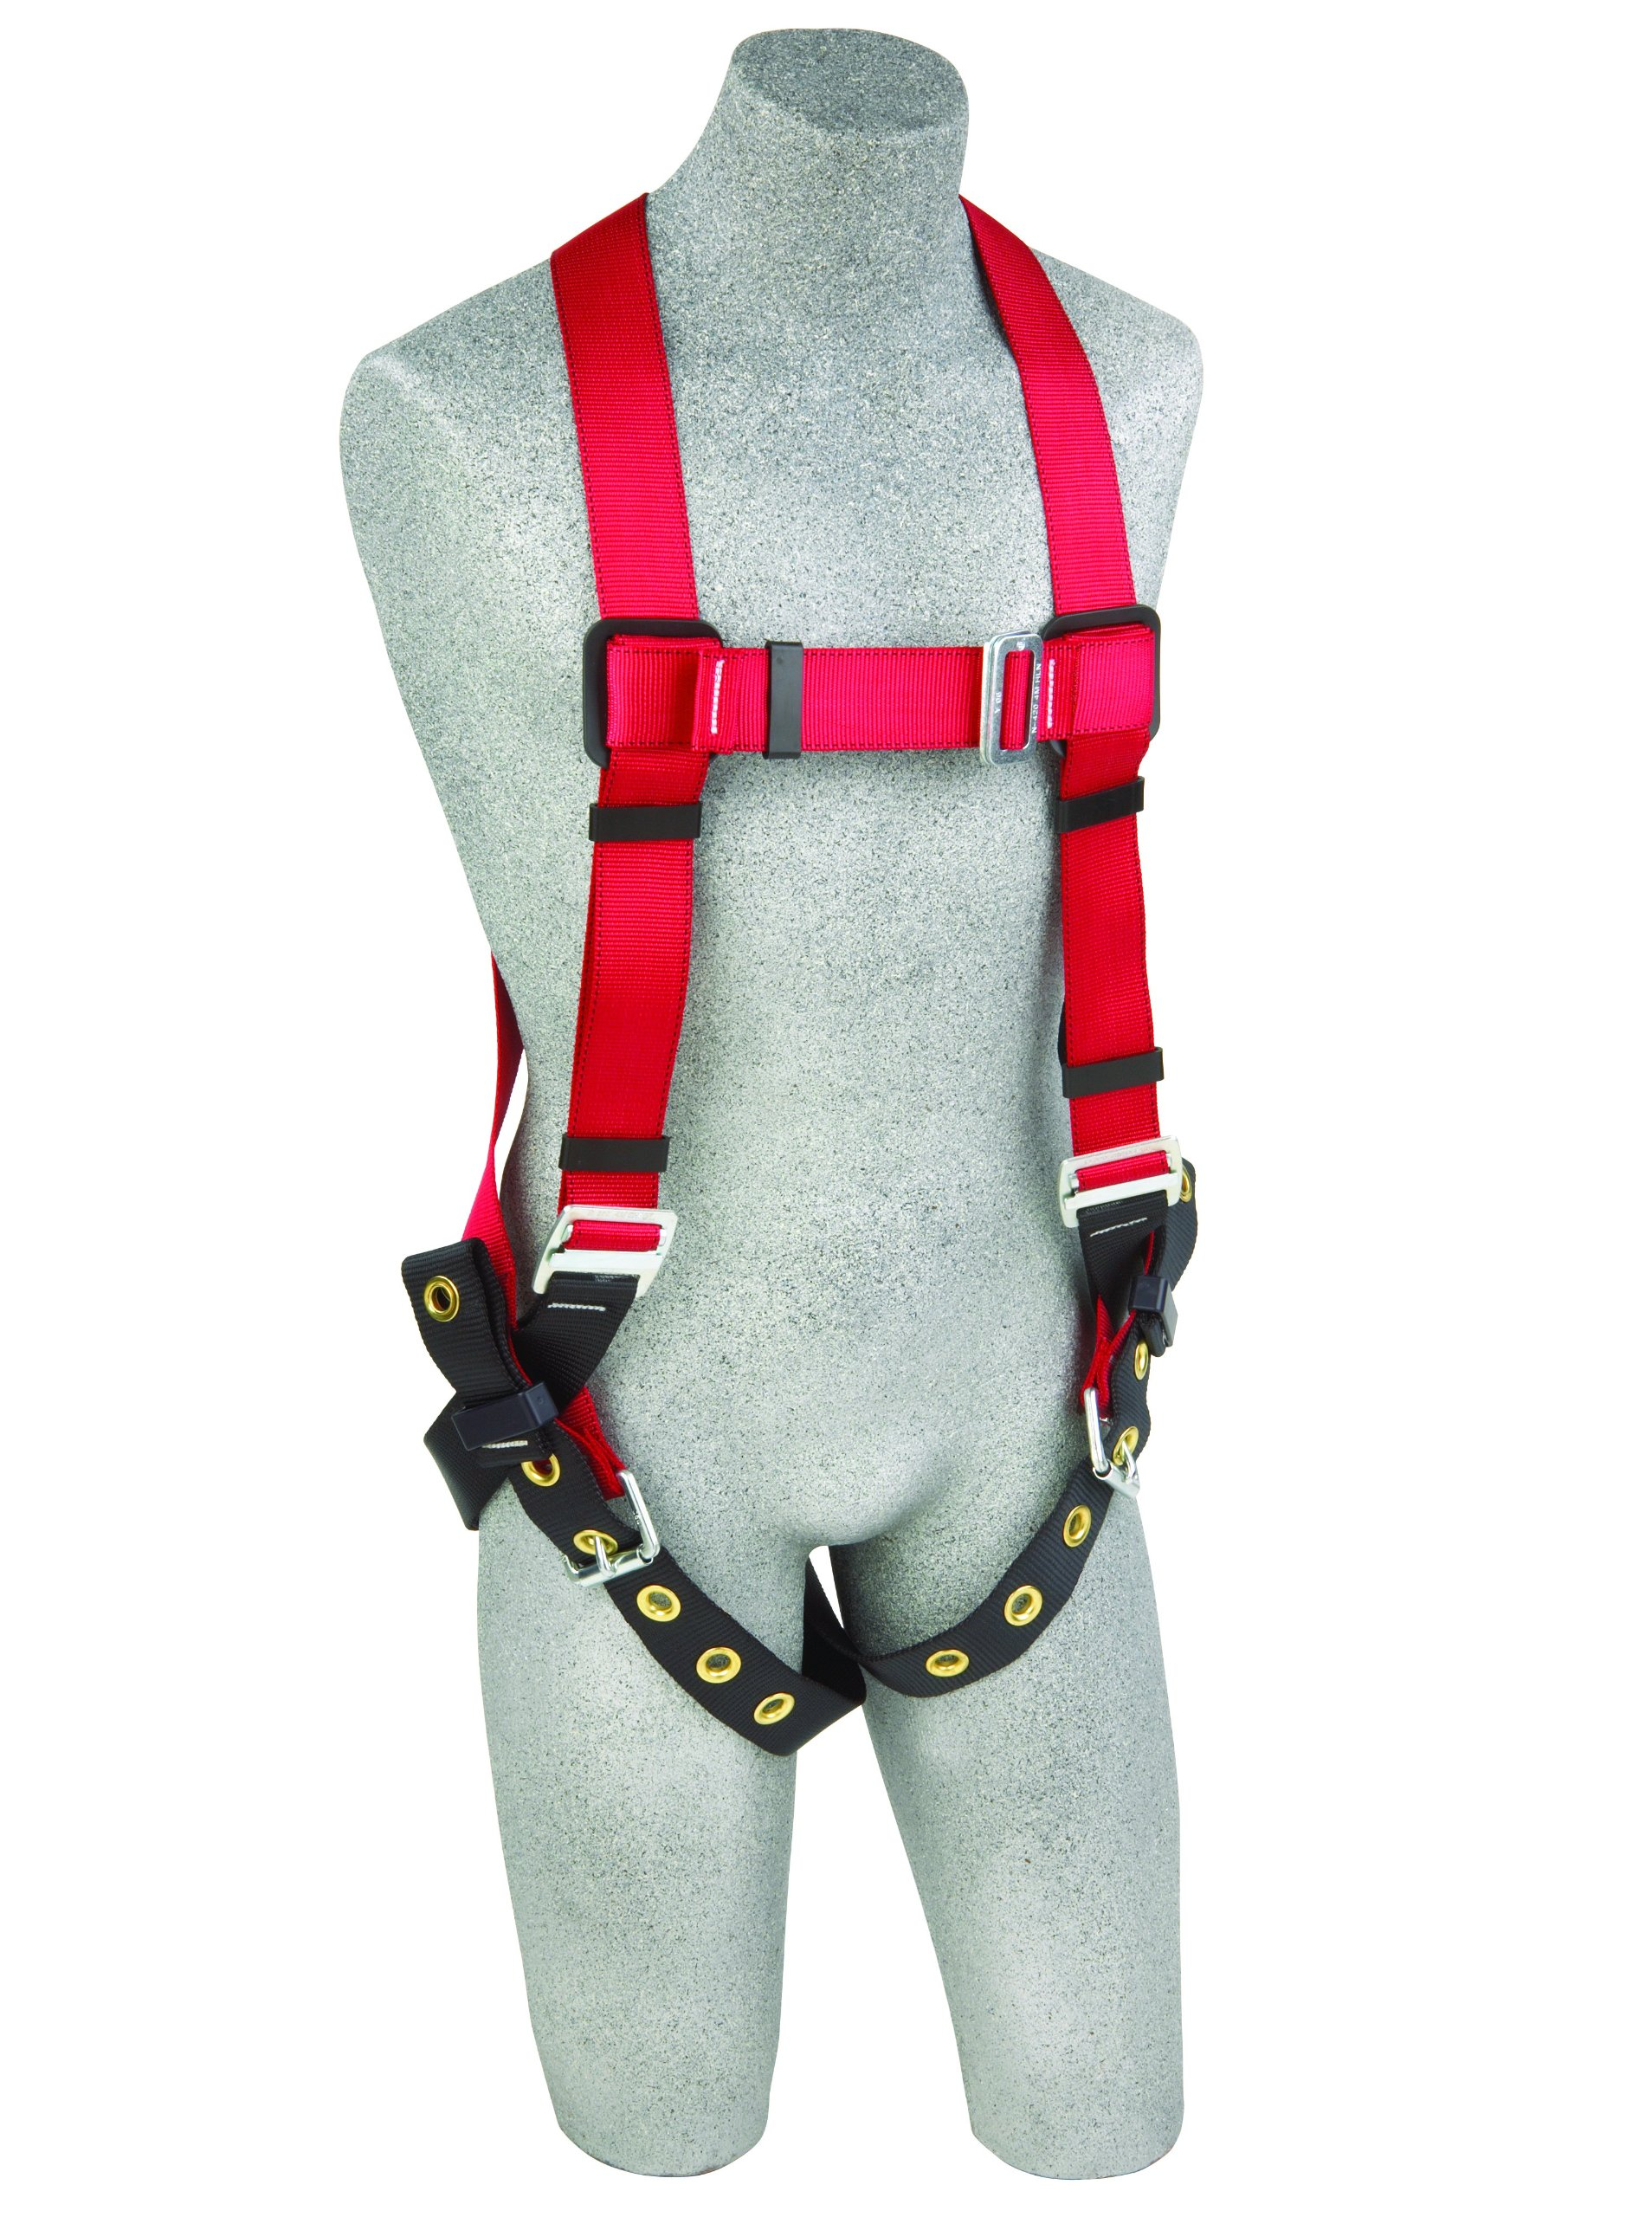 3M Protecta PRO 1191236 Fall Protection Full Body Harness, Back D-Ring, Tongue Buckle Legs, 420  lb. Capacity, Small, Red/Black